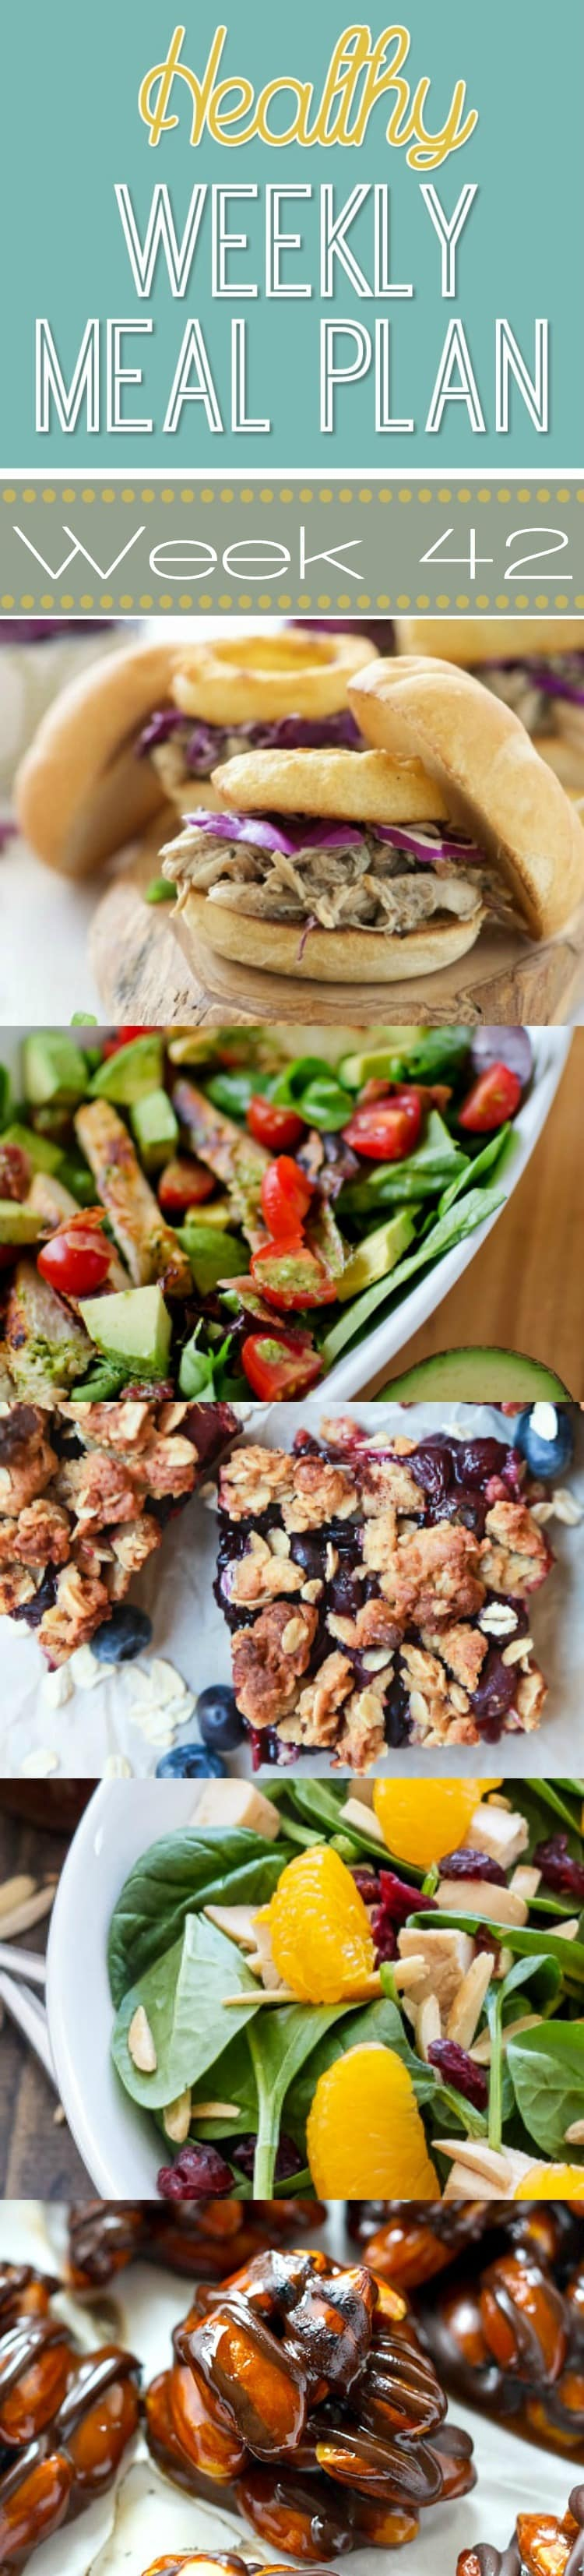 Healthy Weekly Meal Plan #42 - check out this week's healthy recipes! Lots of dinner ideas plus a lunch, snack, side dish and dessert. You won't want to miss this meal plan!